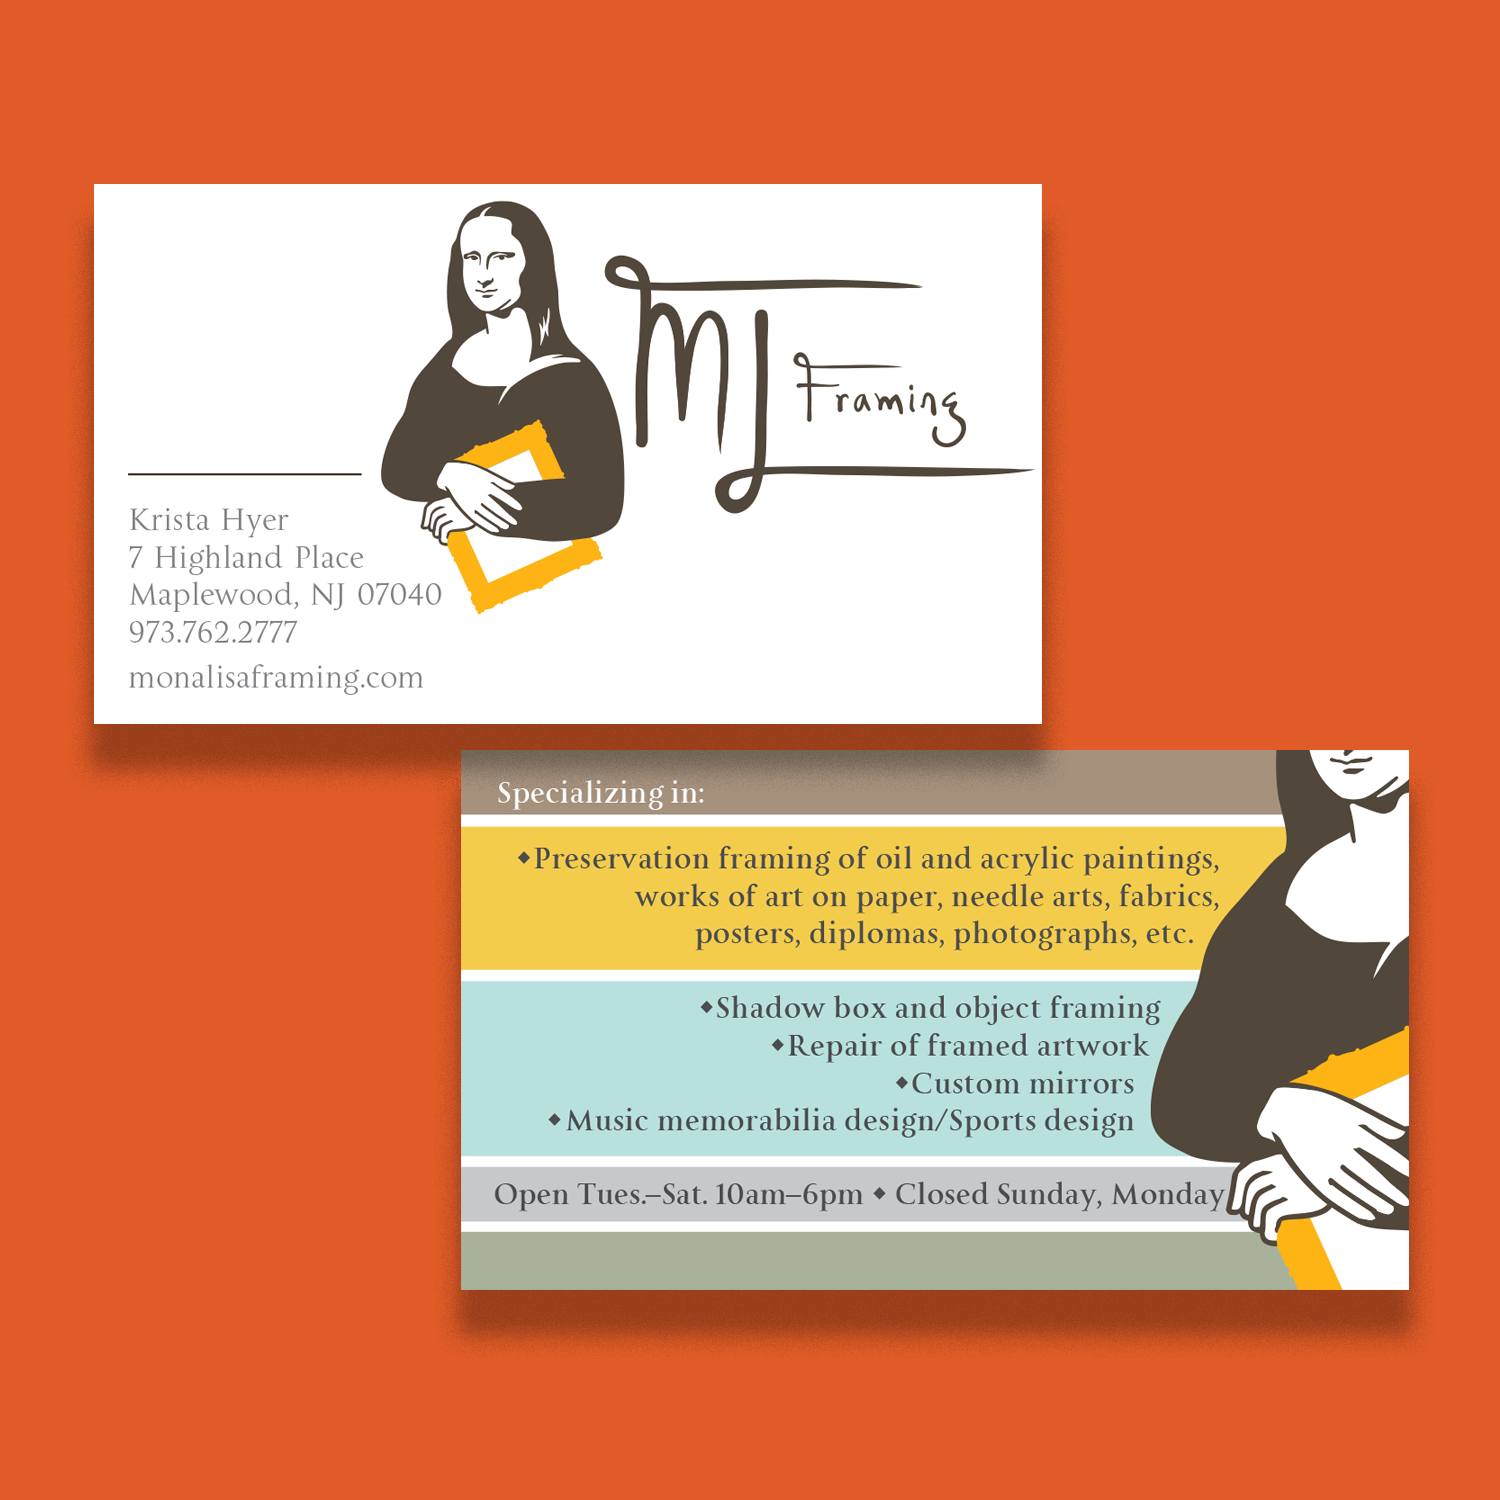 ML Framing owner's 2-sided business card